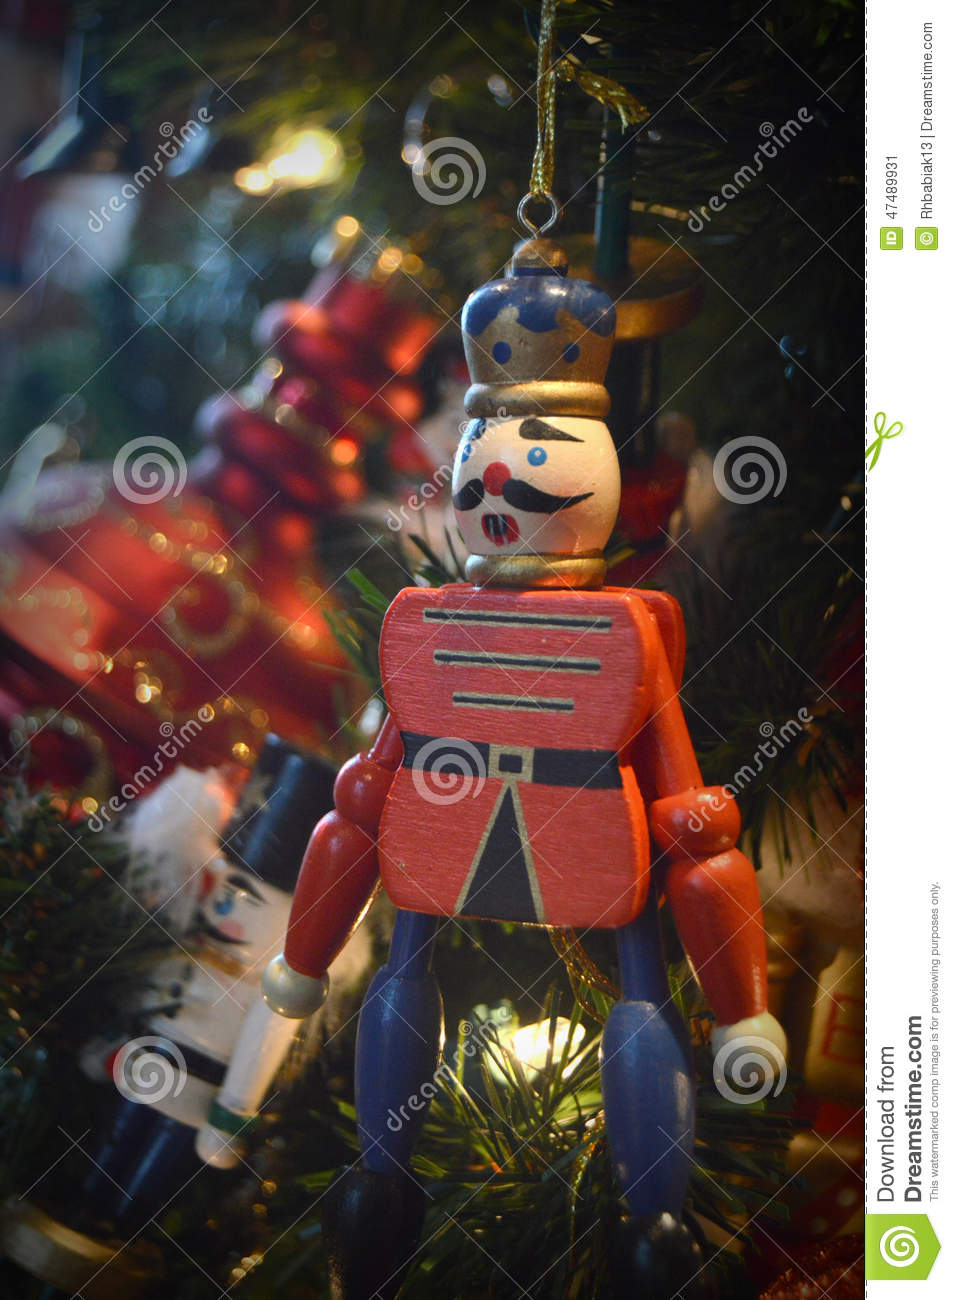 download toy soldier christmas ornament stock image image of soldiers holiday 47489931